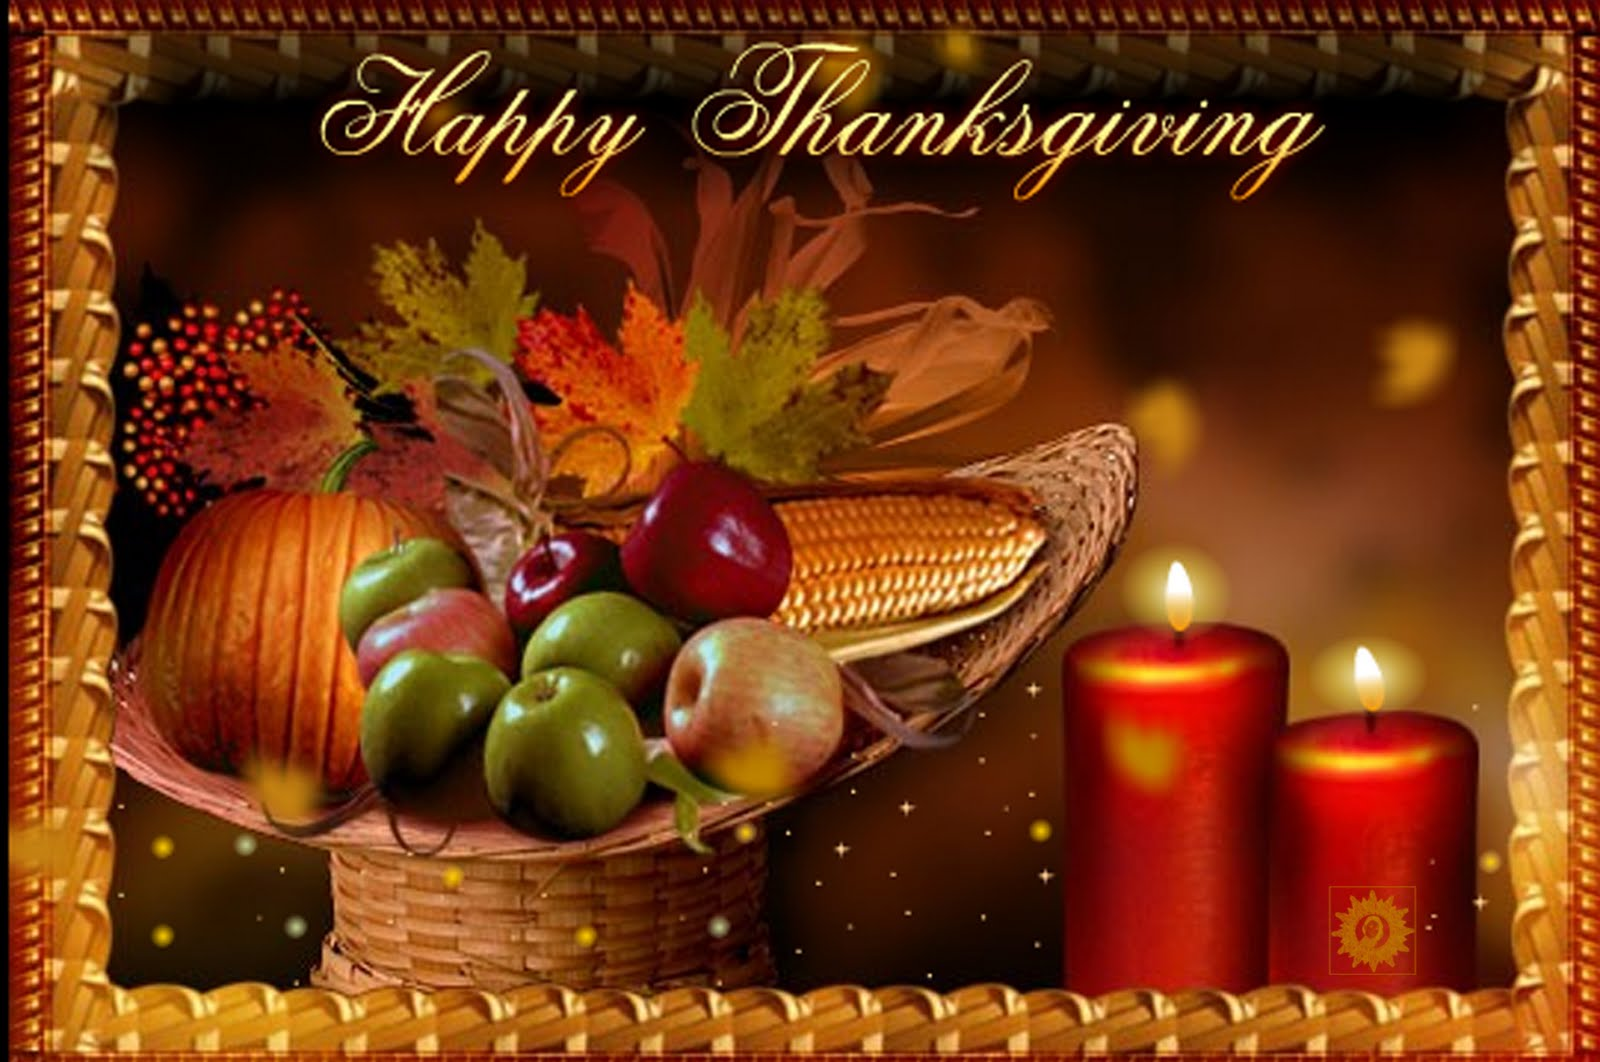 red_candles_thanksgiving_wallpaper-519619